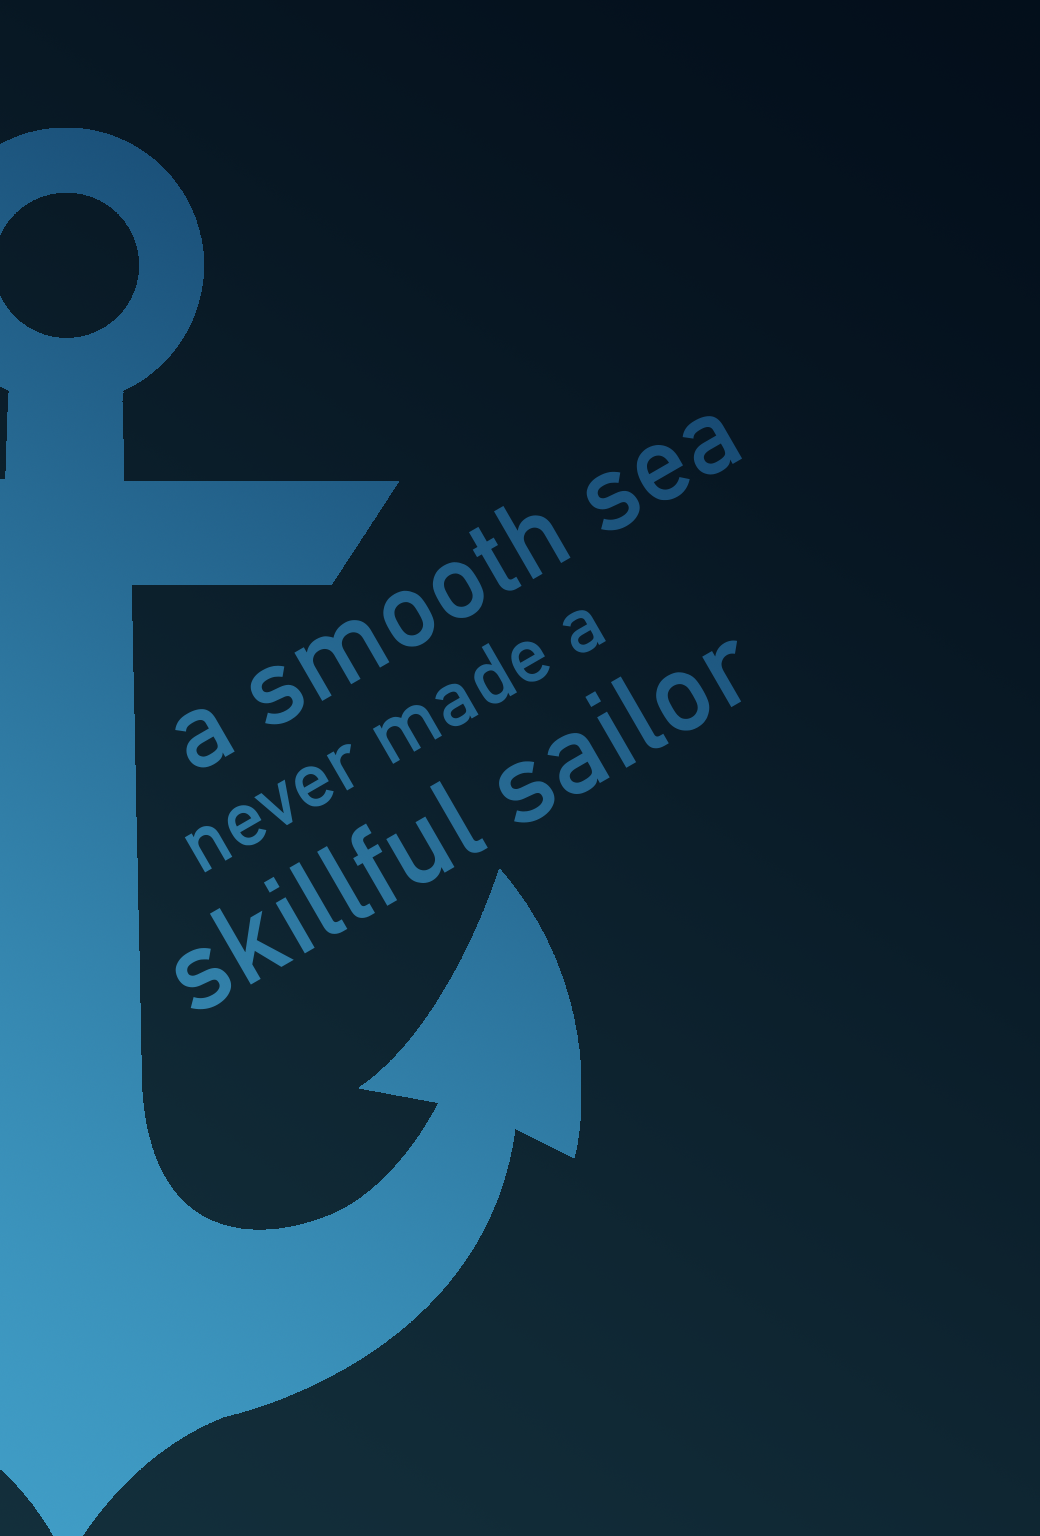 This is an iPhone wallpaper: A smooth sea never made a skilled sailor.